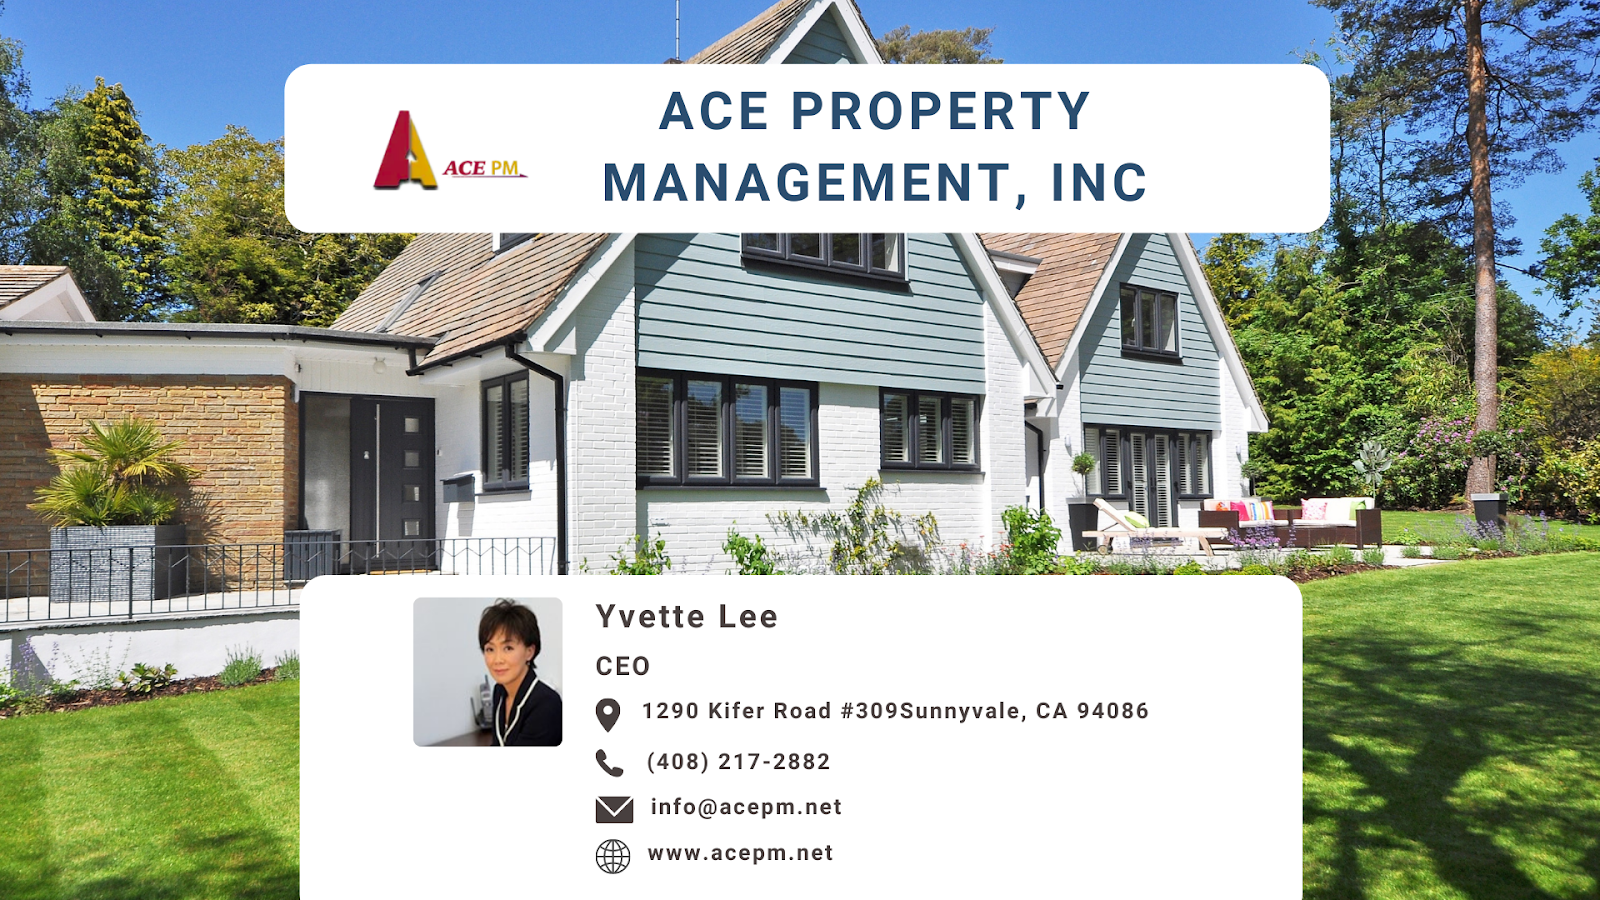 Ace Property Management, Inc